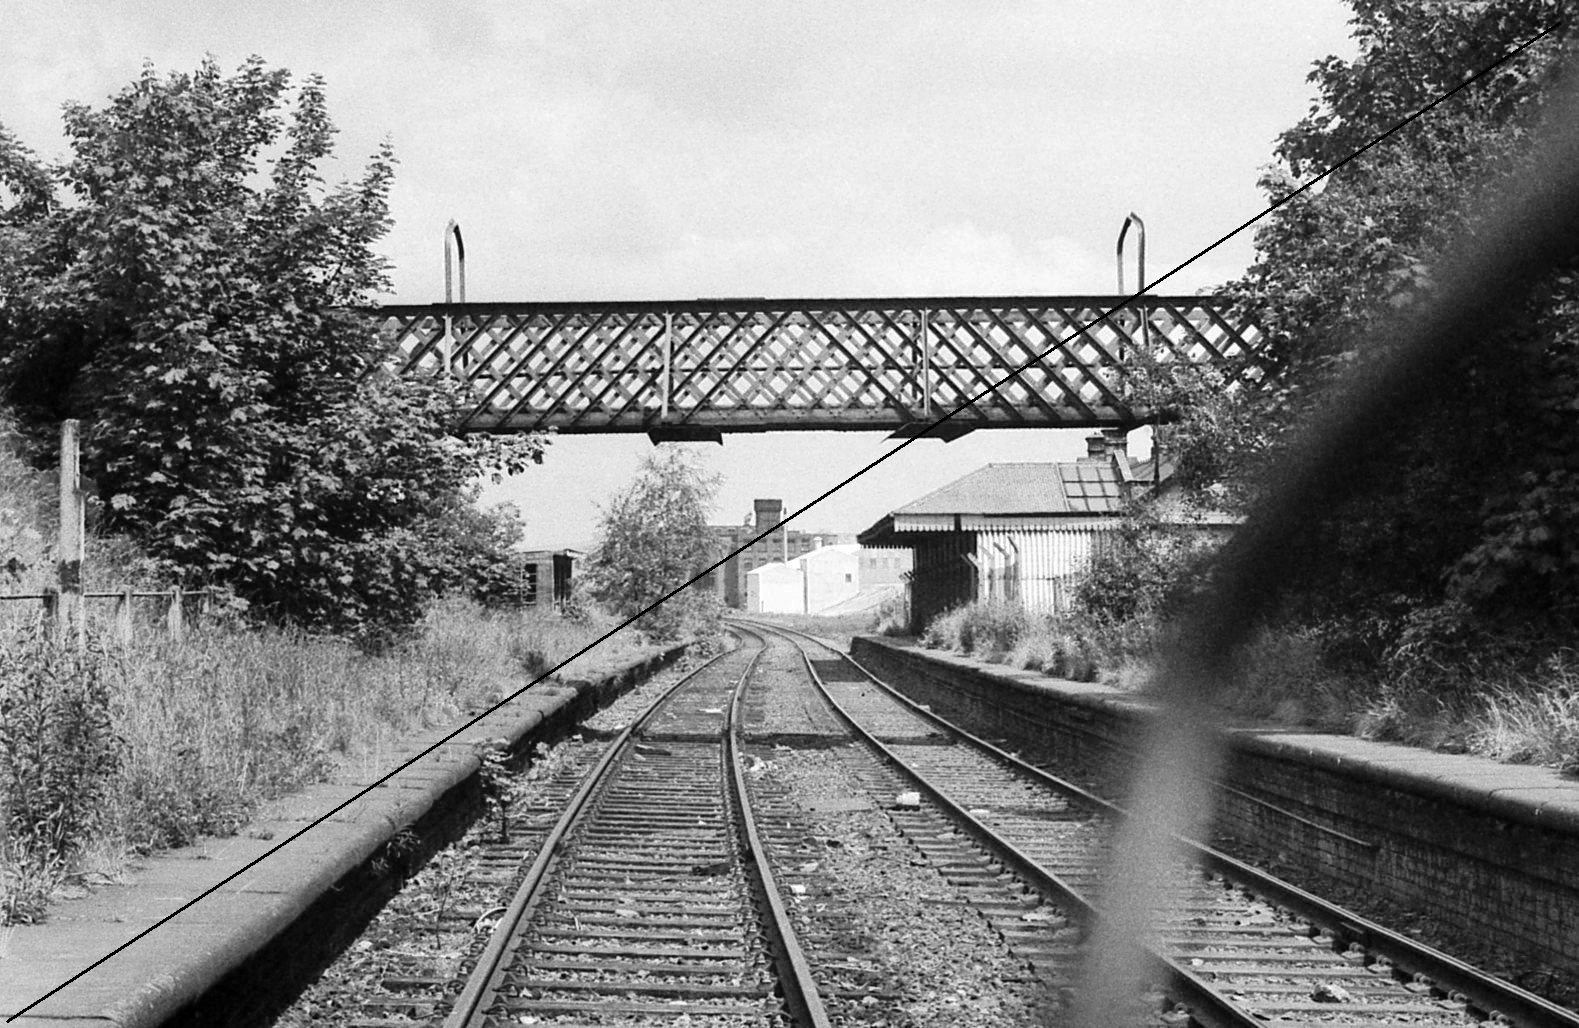 GCR002-Killamarsh Central Station-Looking North-16-06-1977.jpg